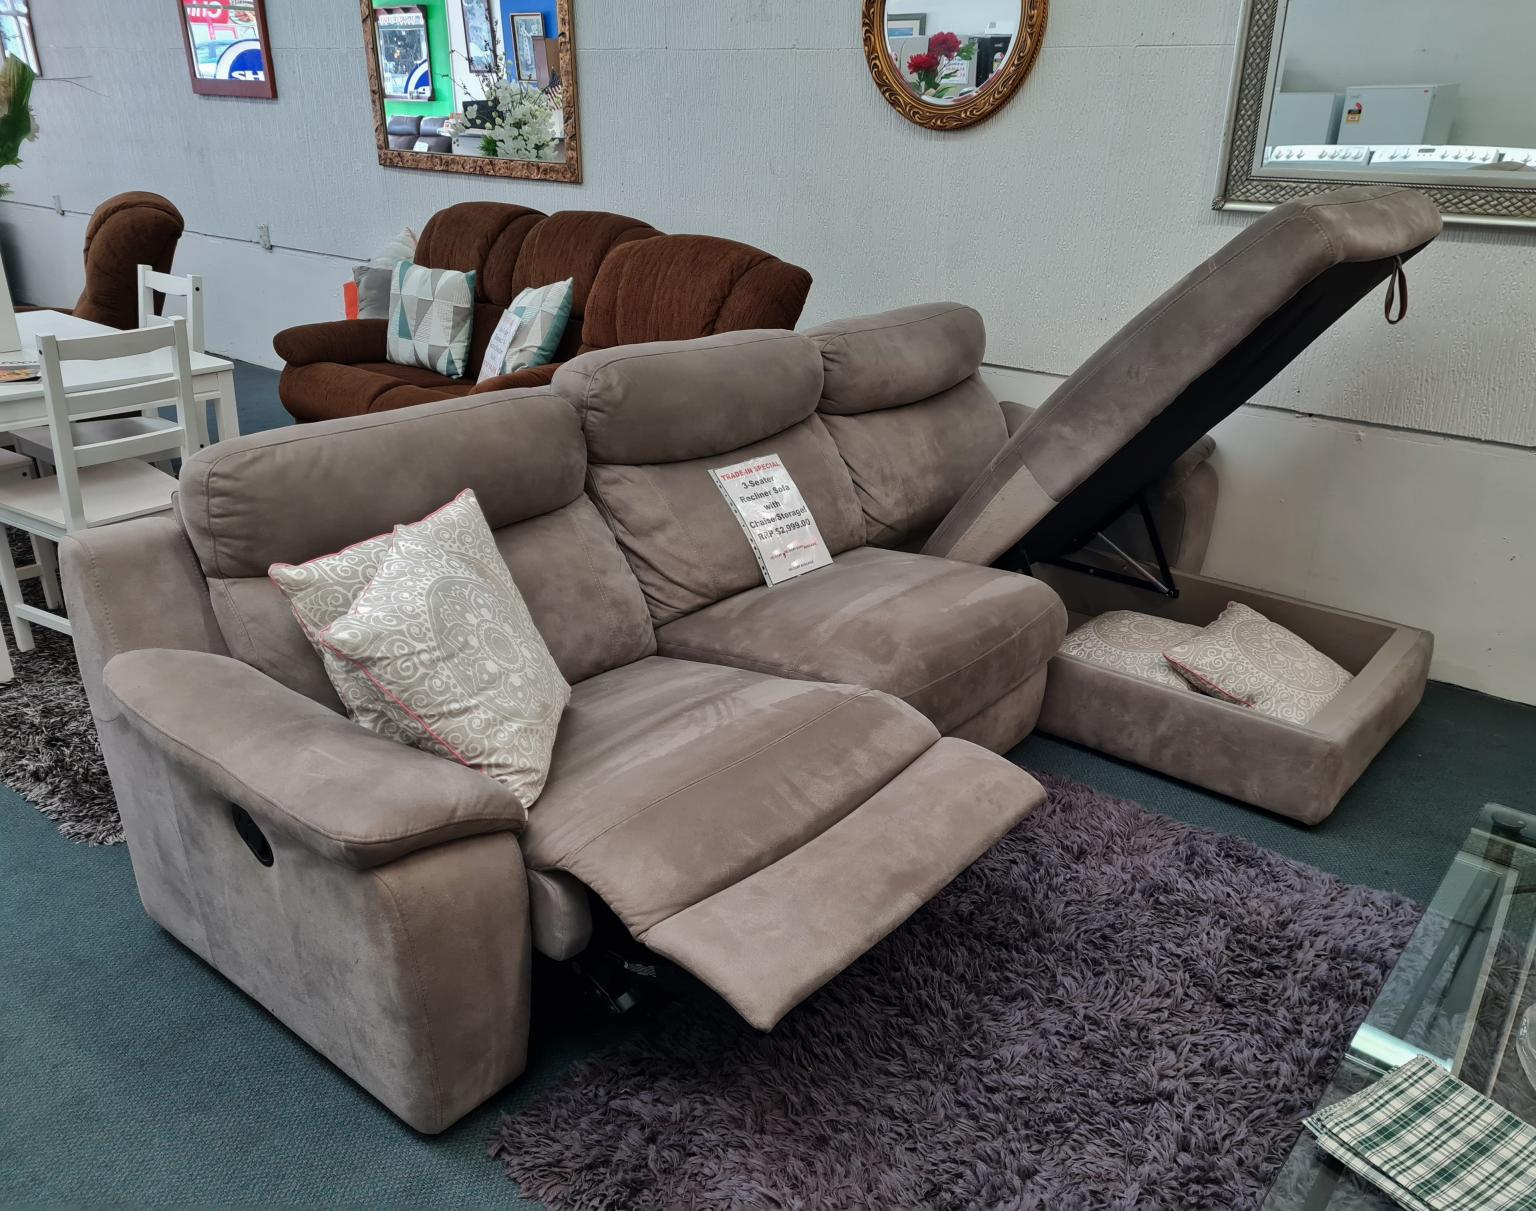 3-Seater Recliner Sofa with Chaise/Storage